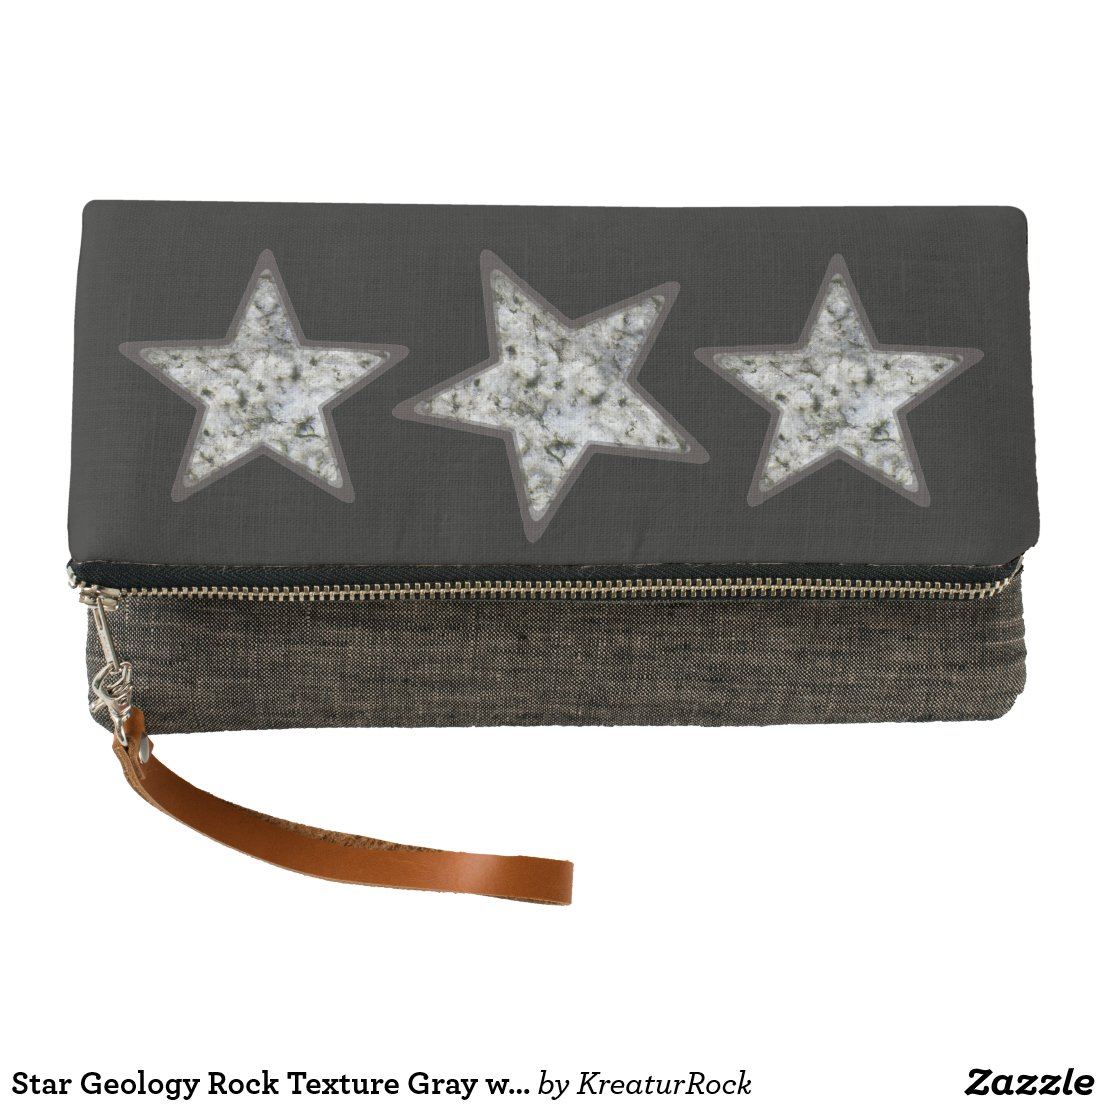 Star Geology Rock Texture Gray with any Color